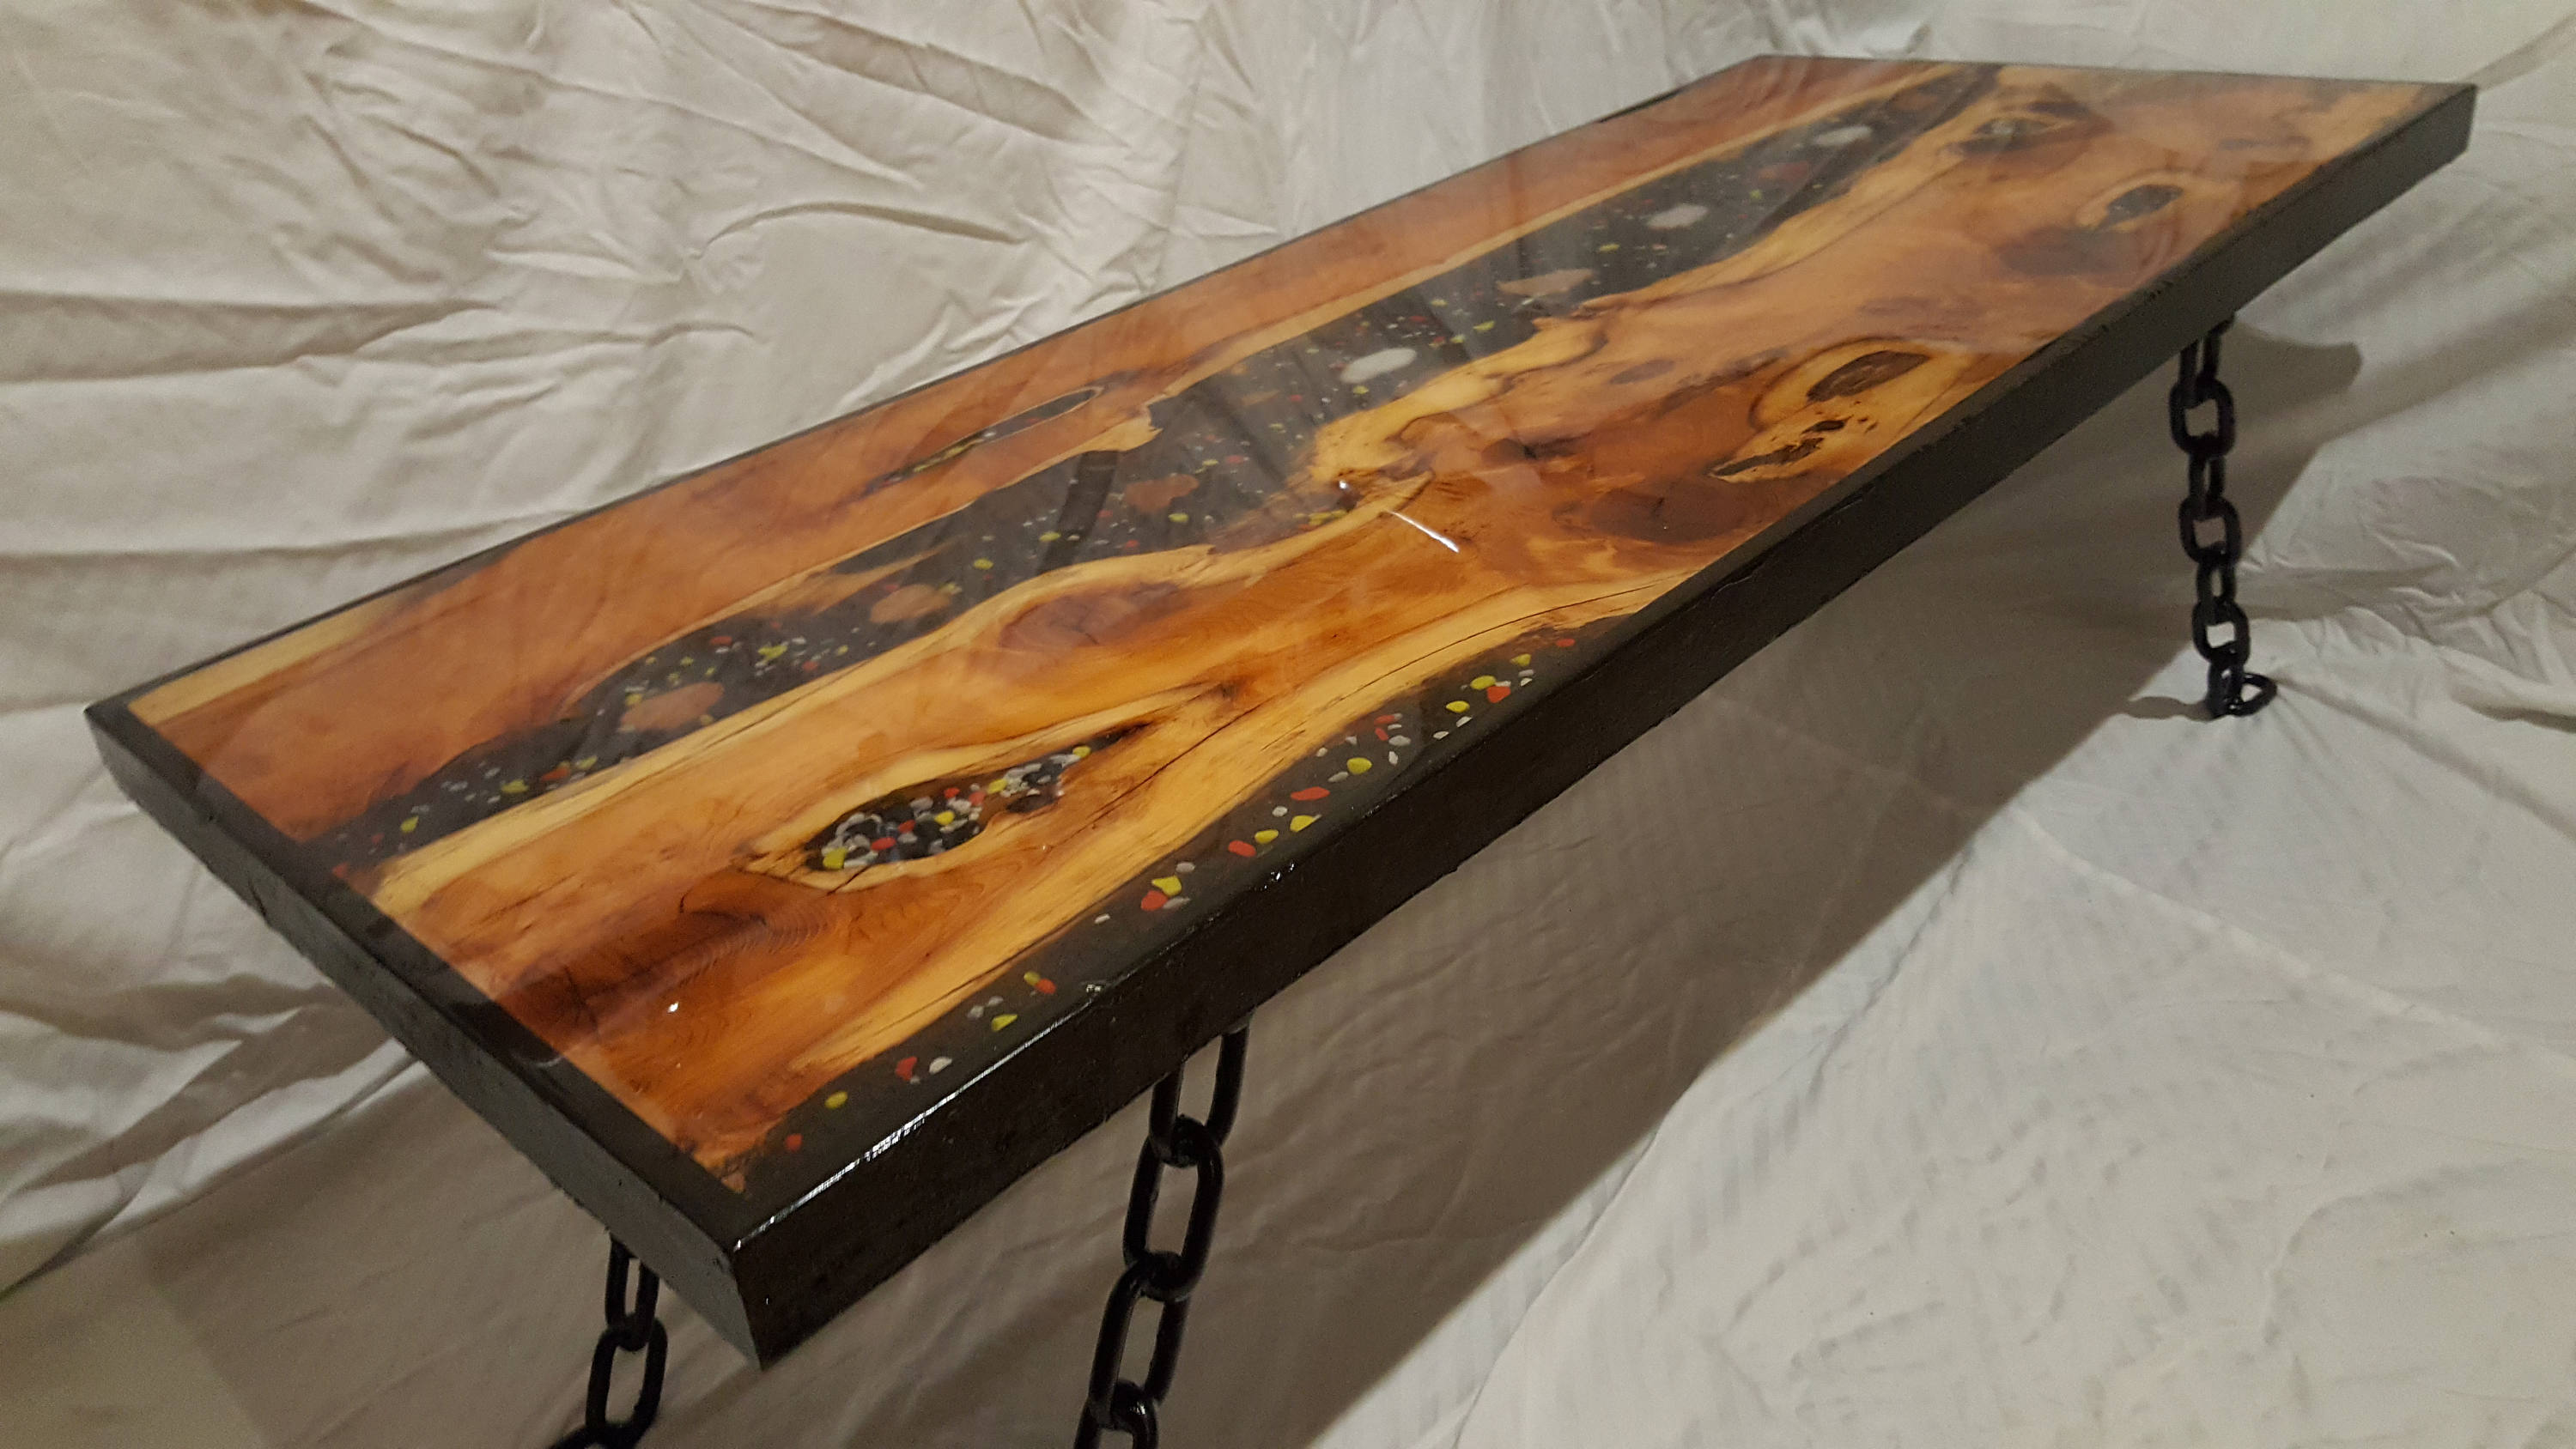 Stunning Epoxy Resin Coffee Table River Yew Wood Bespoke With